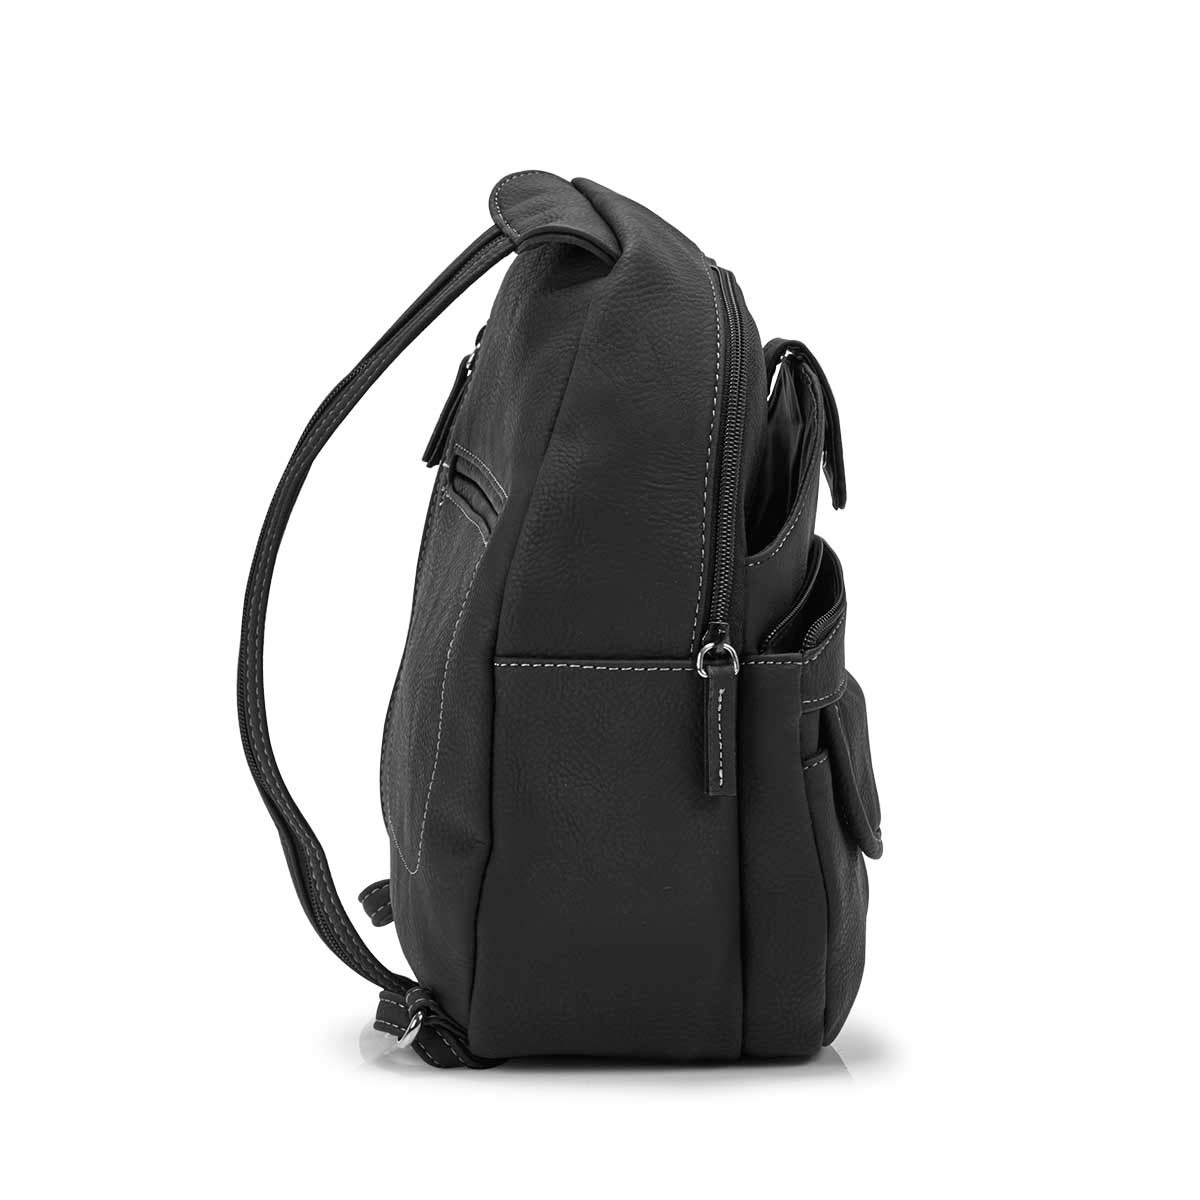 Lds Jamie black small backpack